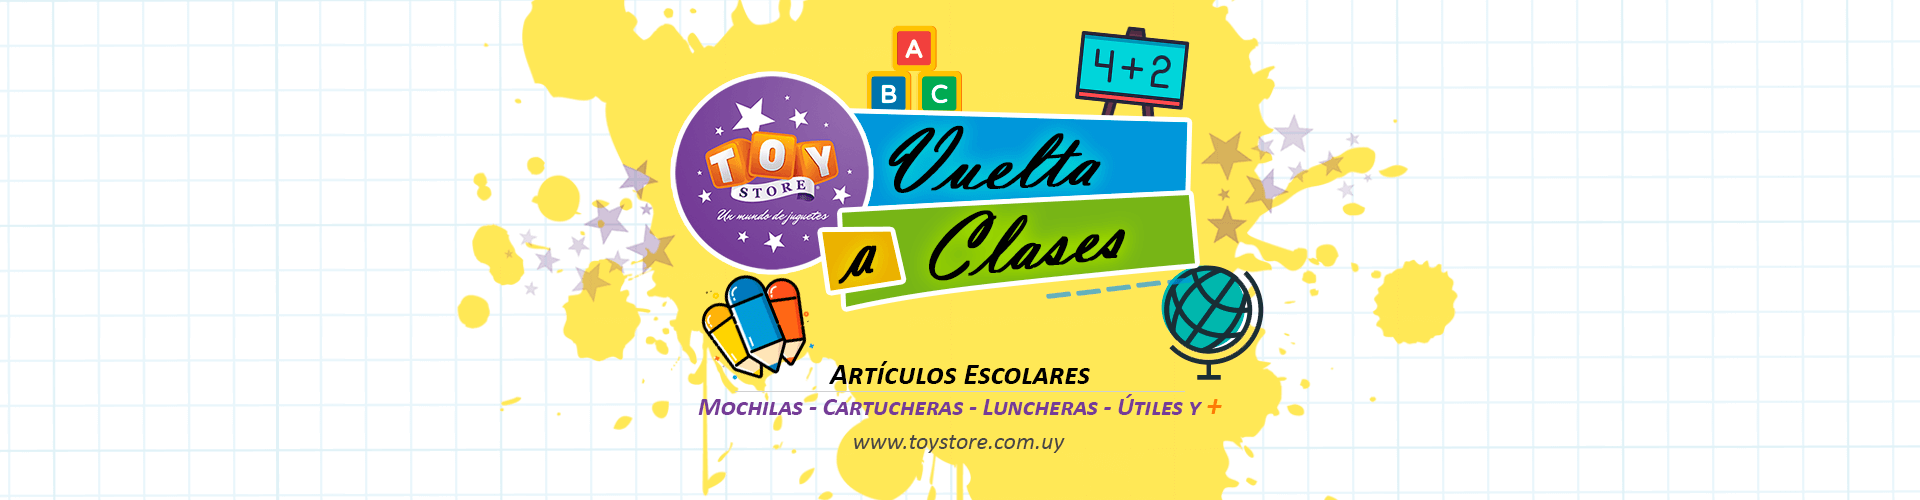 Vuelta a Clases 2019 en Toy Store